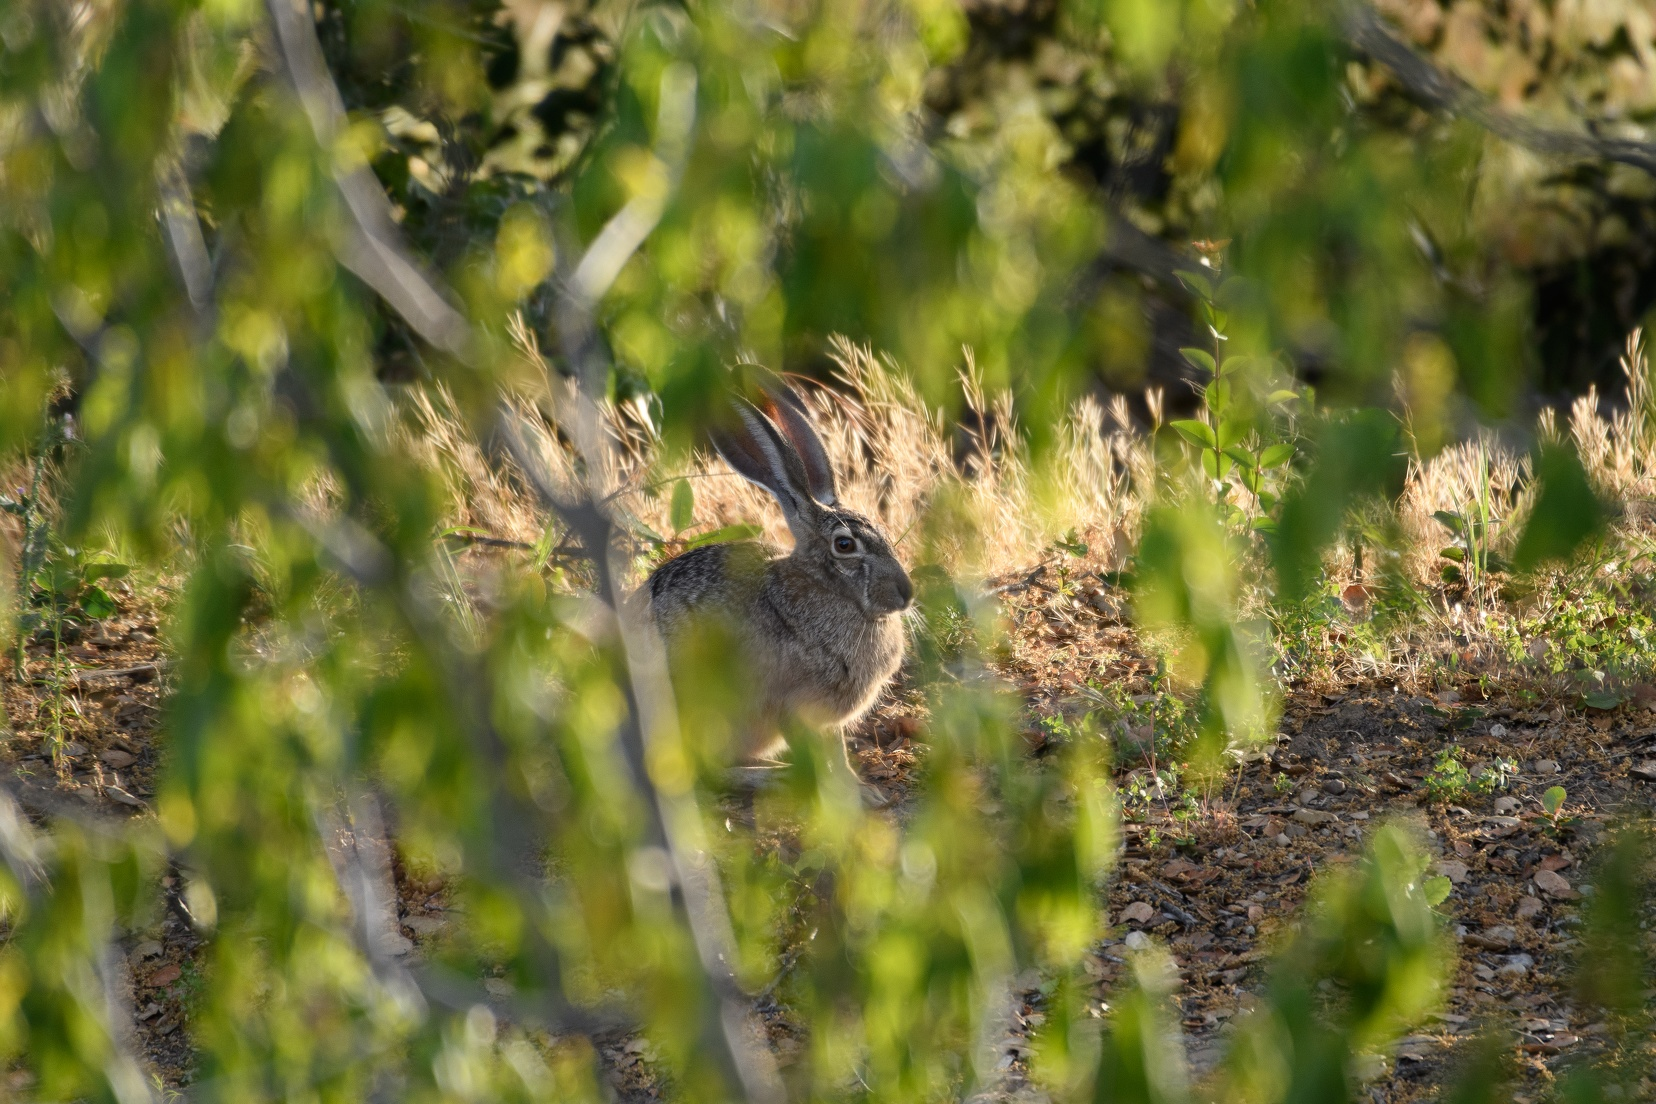 20200515B-DSC_2587-black_tailed_jackrabbit.jpg